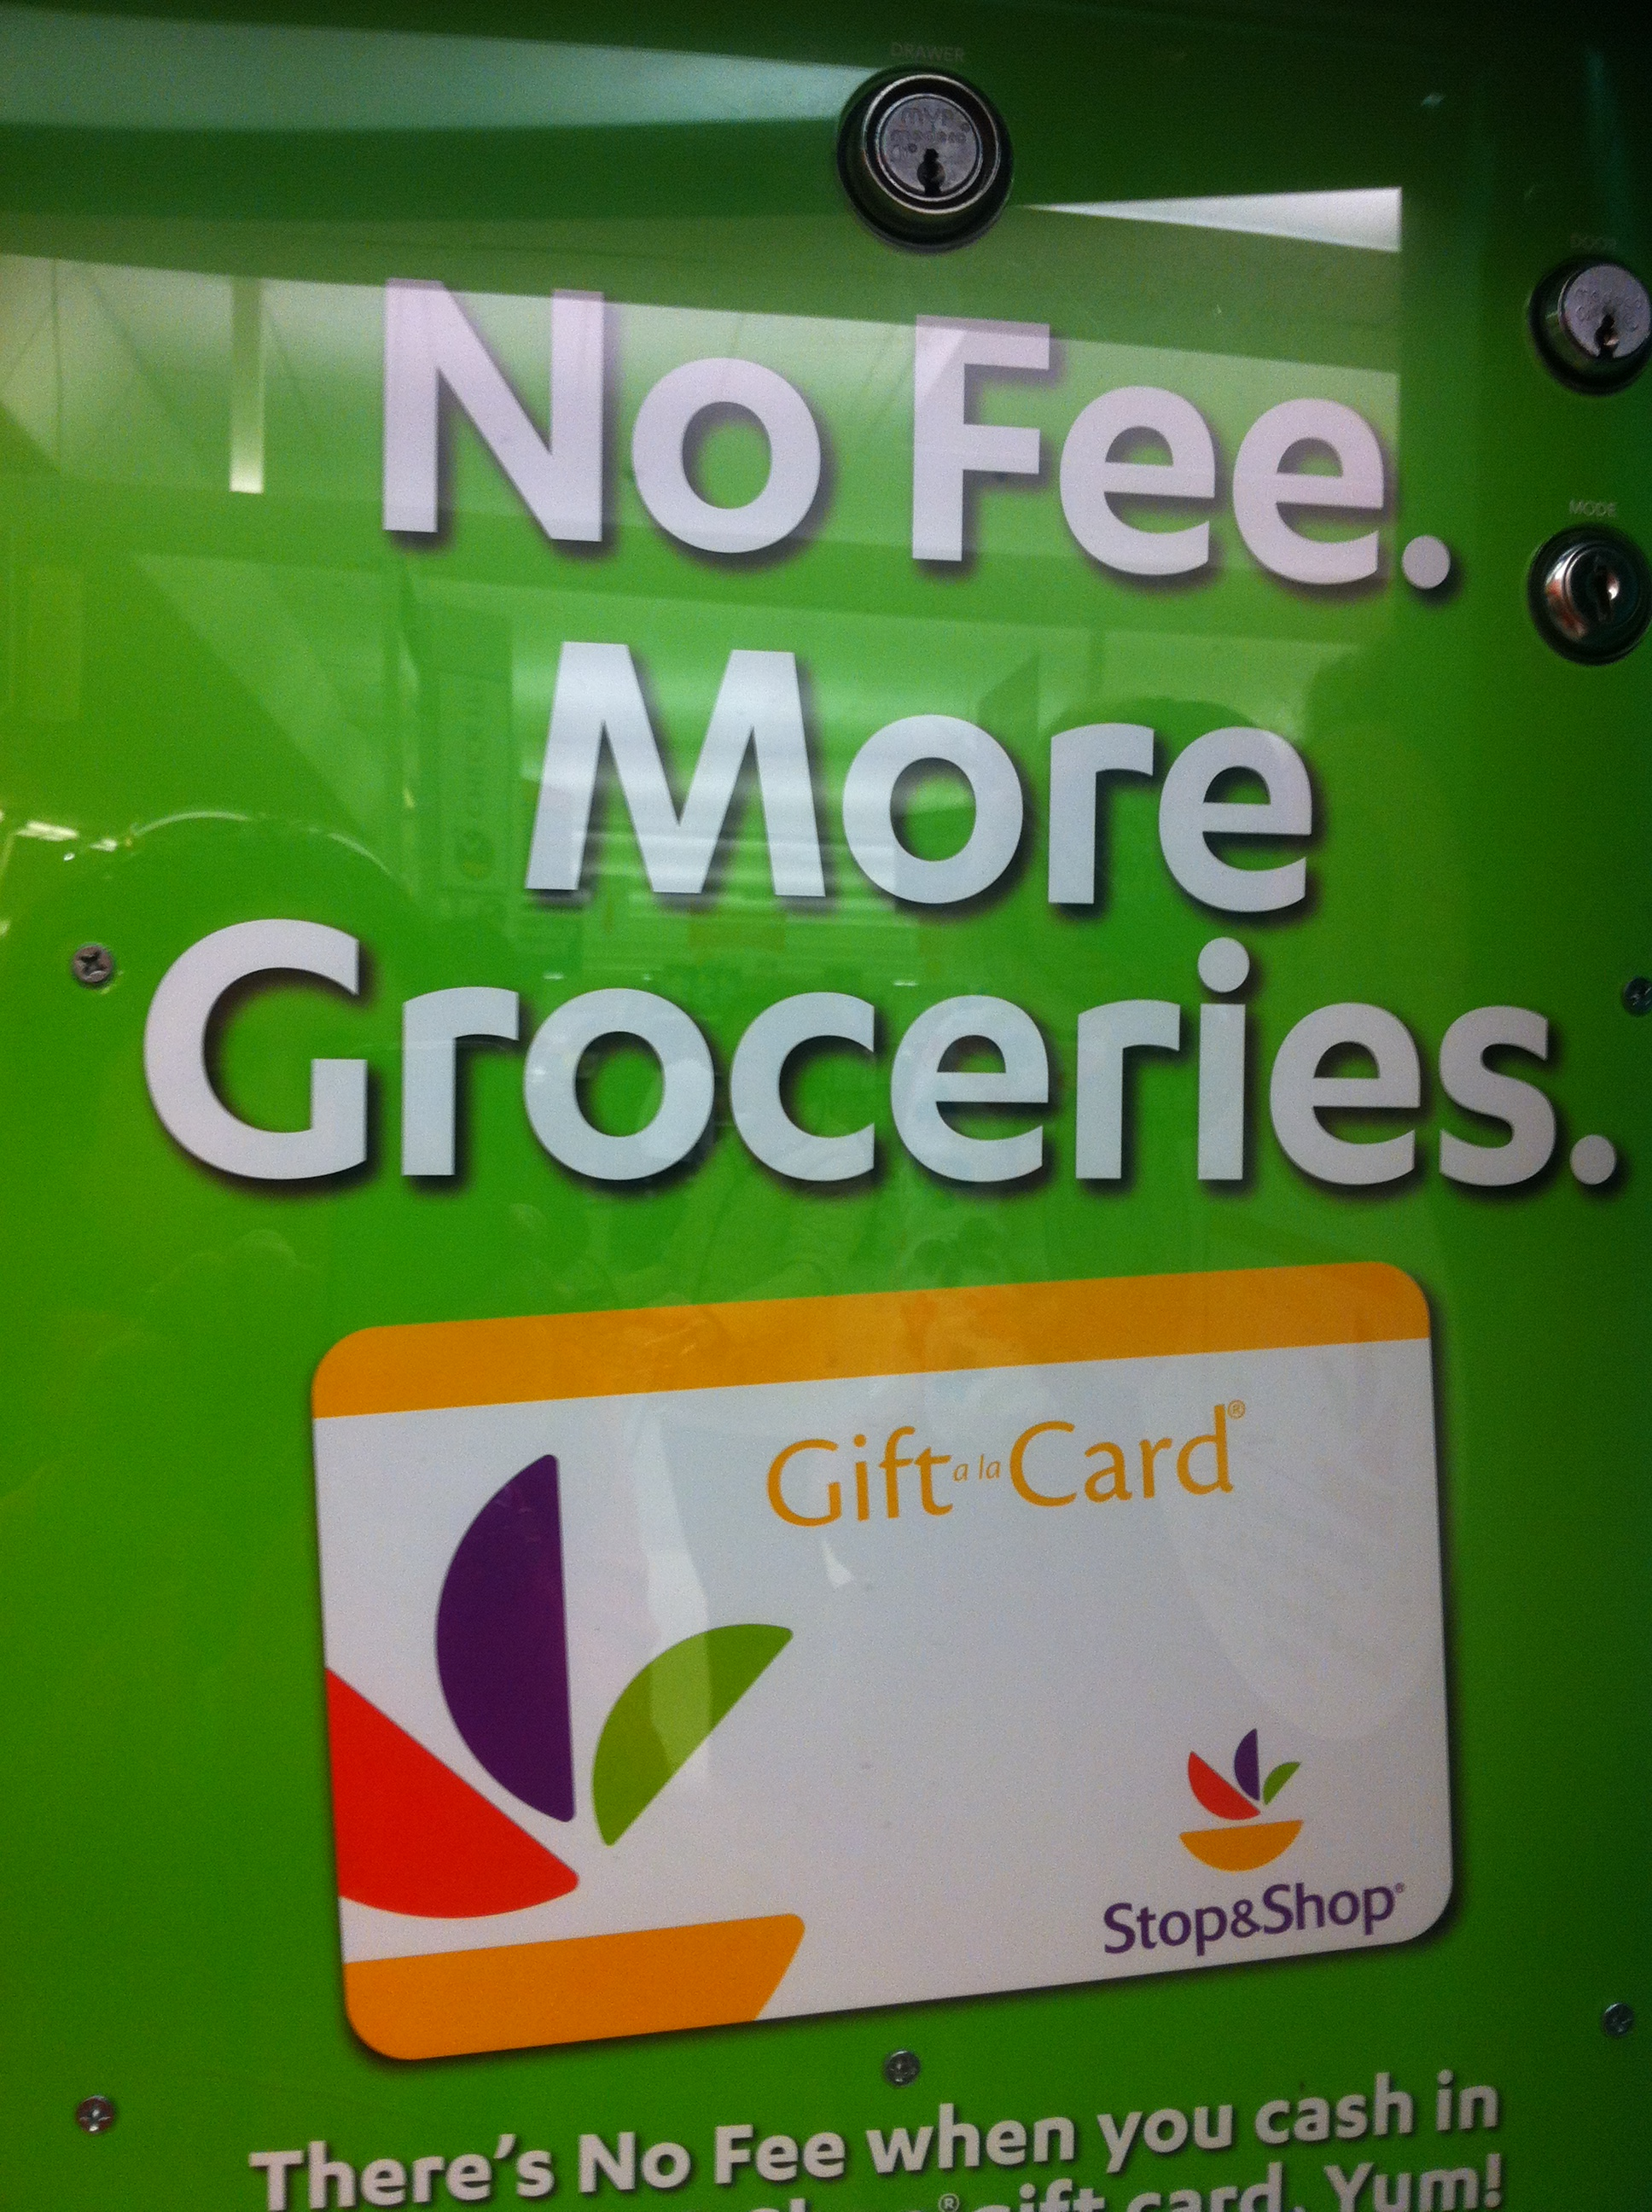 Local Stop & Shops offer #NoFeeCoinstar Gift Card Option #CBias